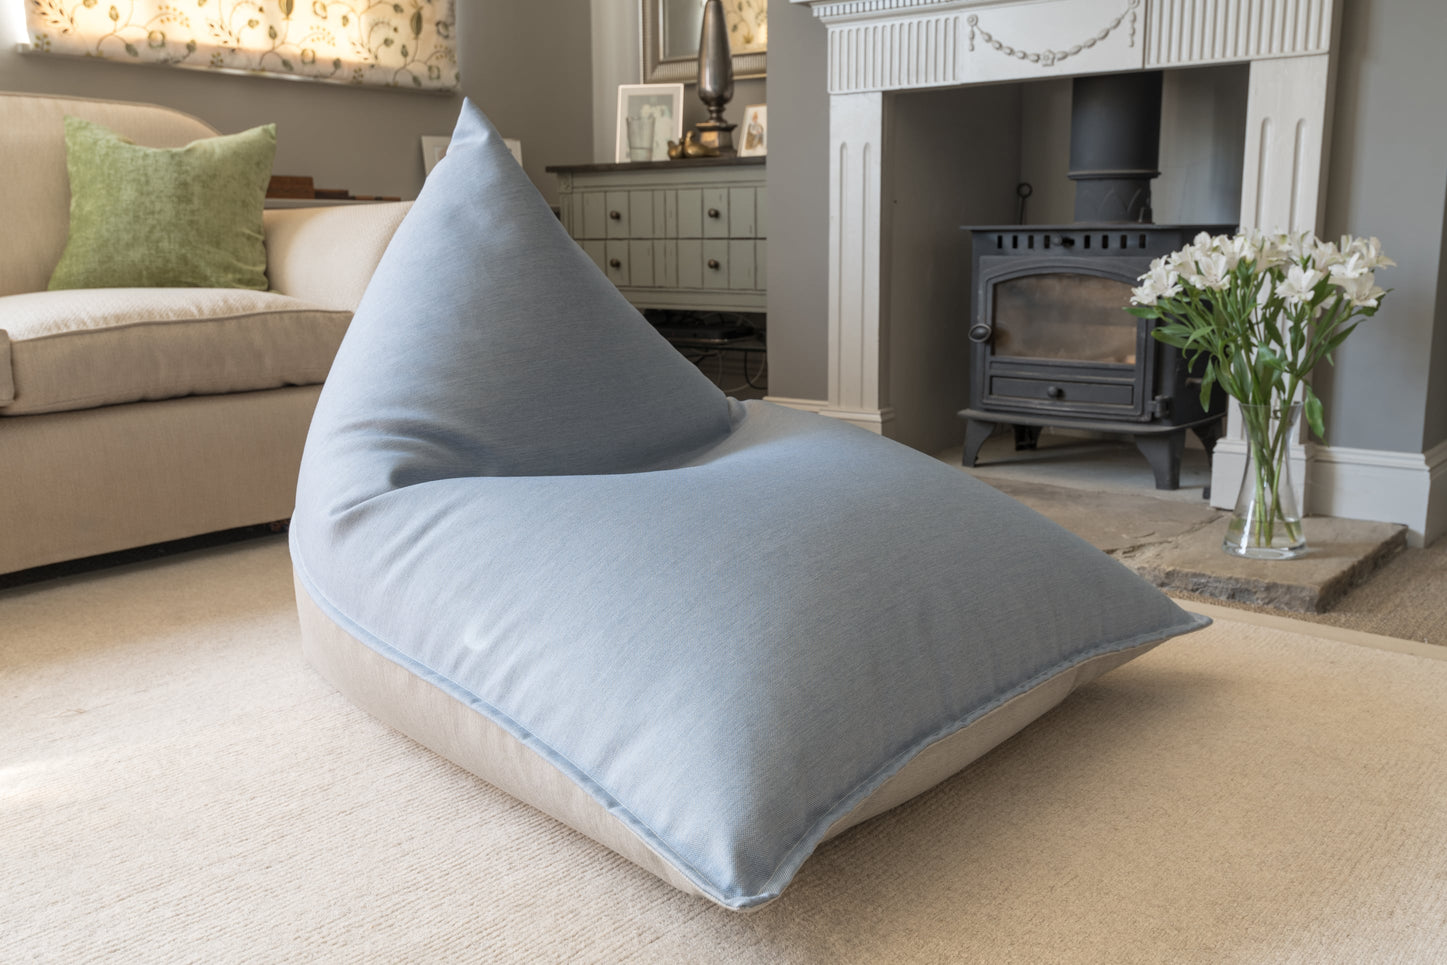 Armadillo Sun bean bag chair in ice blue and grey fabric indoor by fireplace